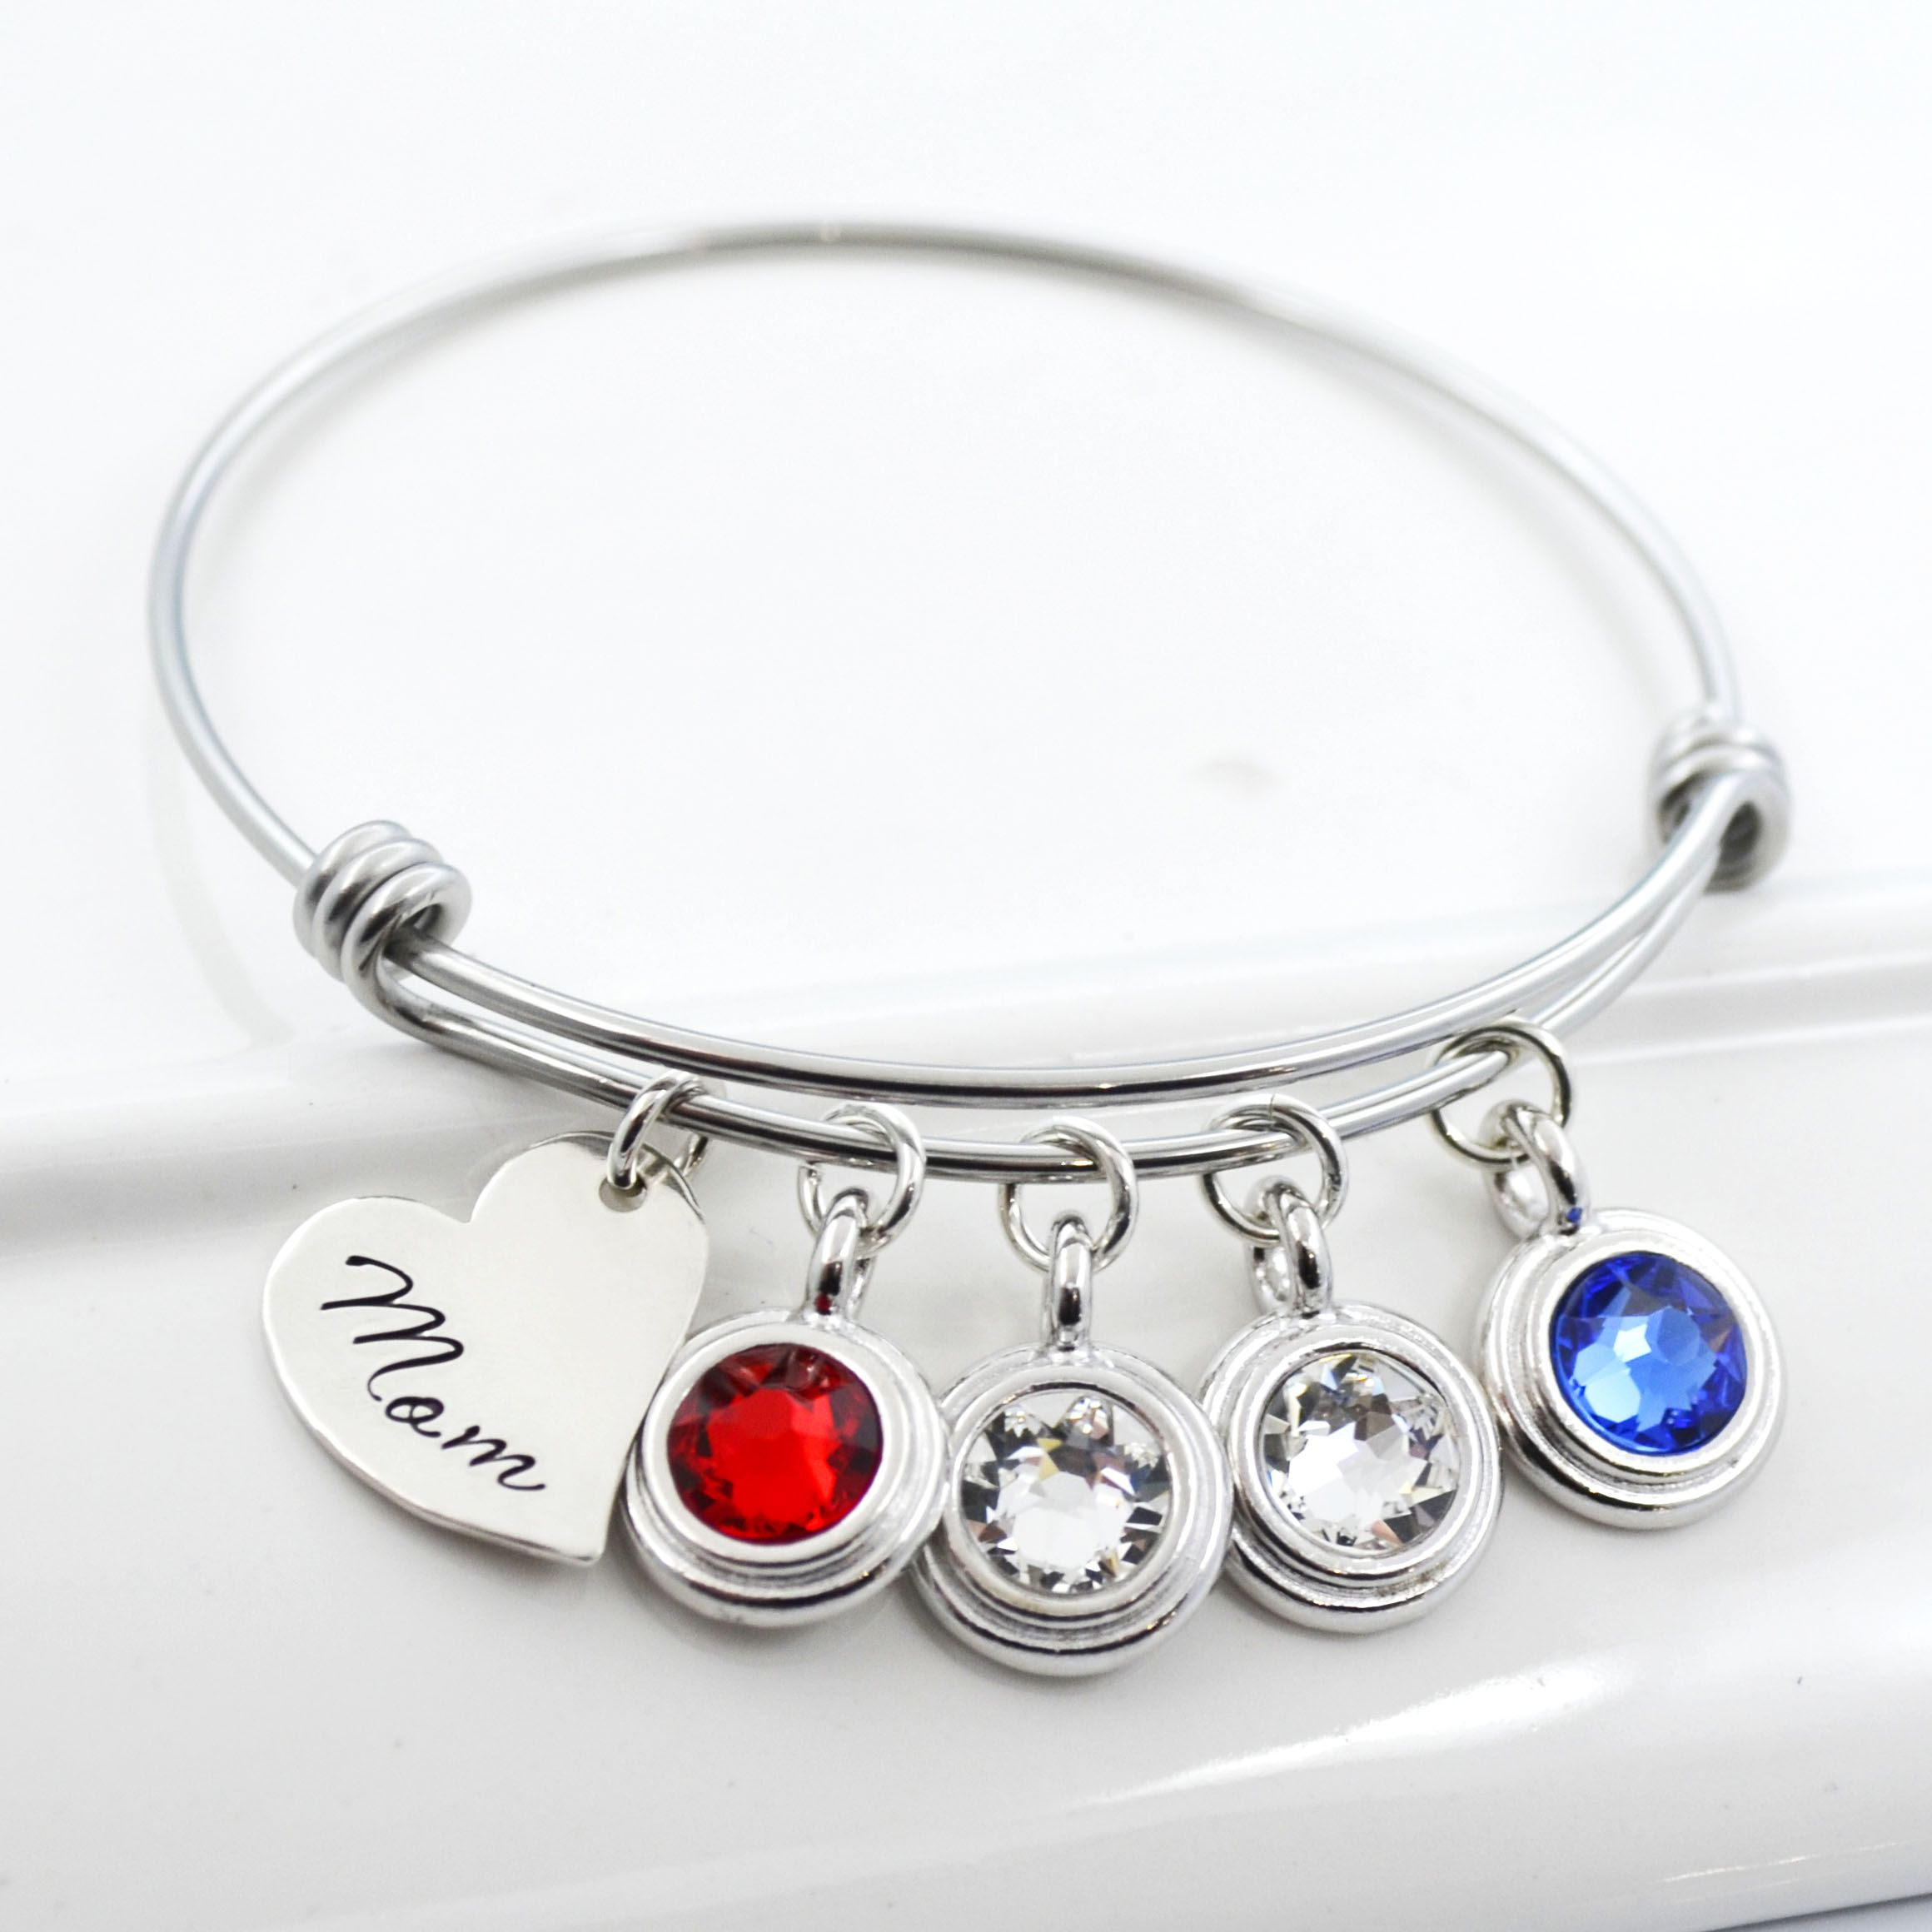 pin station bracelets with pandora bangles charms clip bangle bracelet stackable